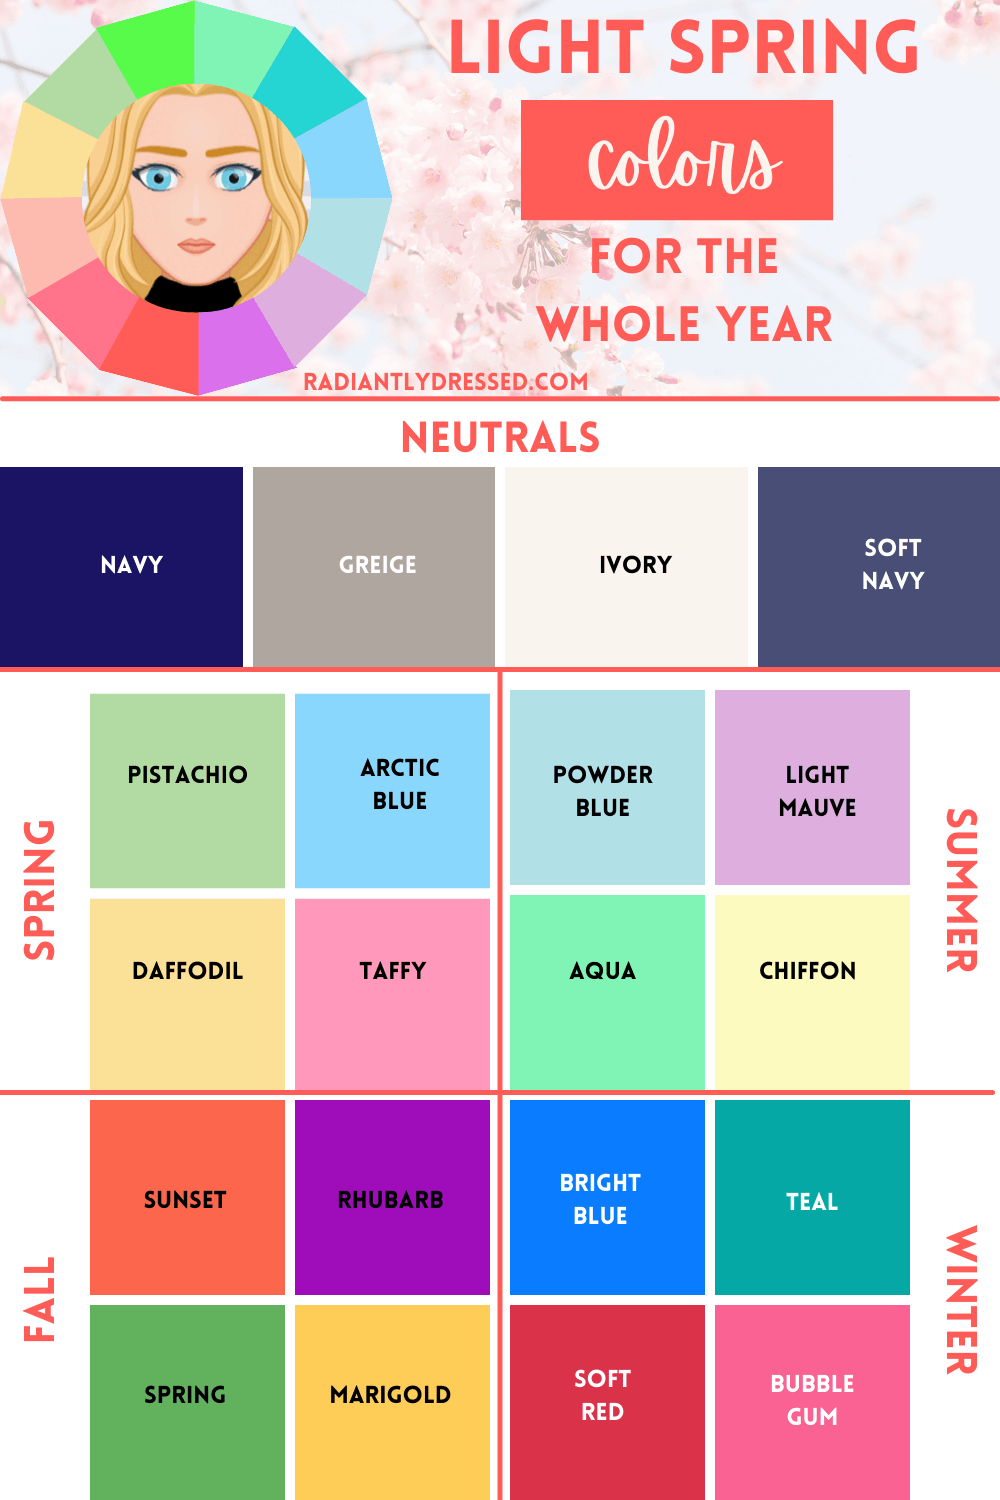 year round colors for light spring